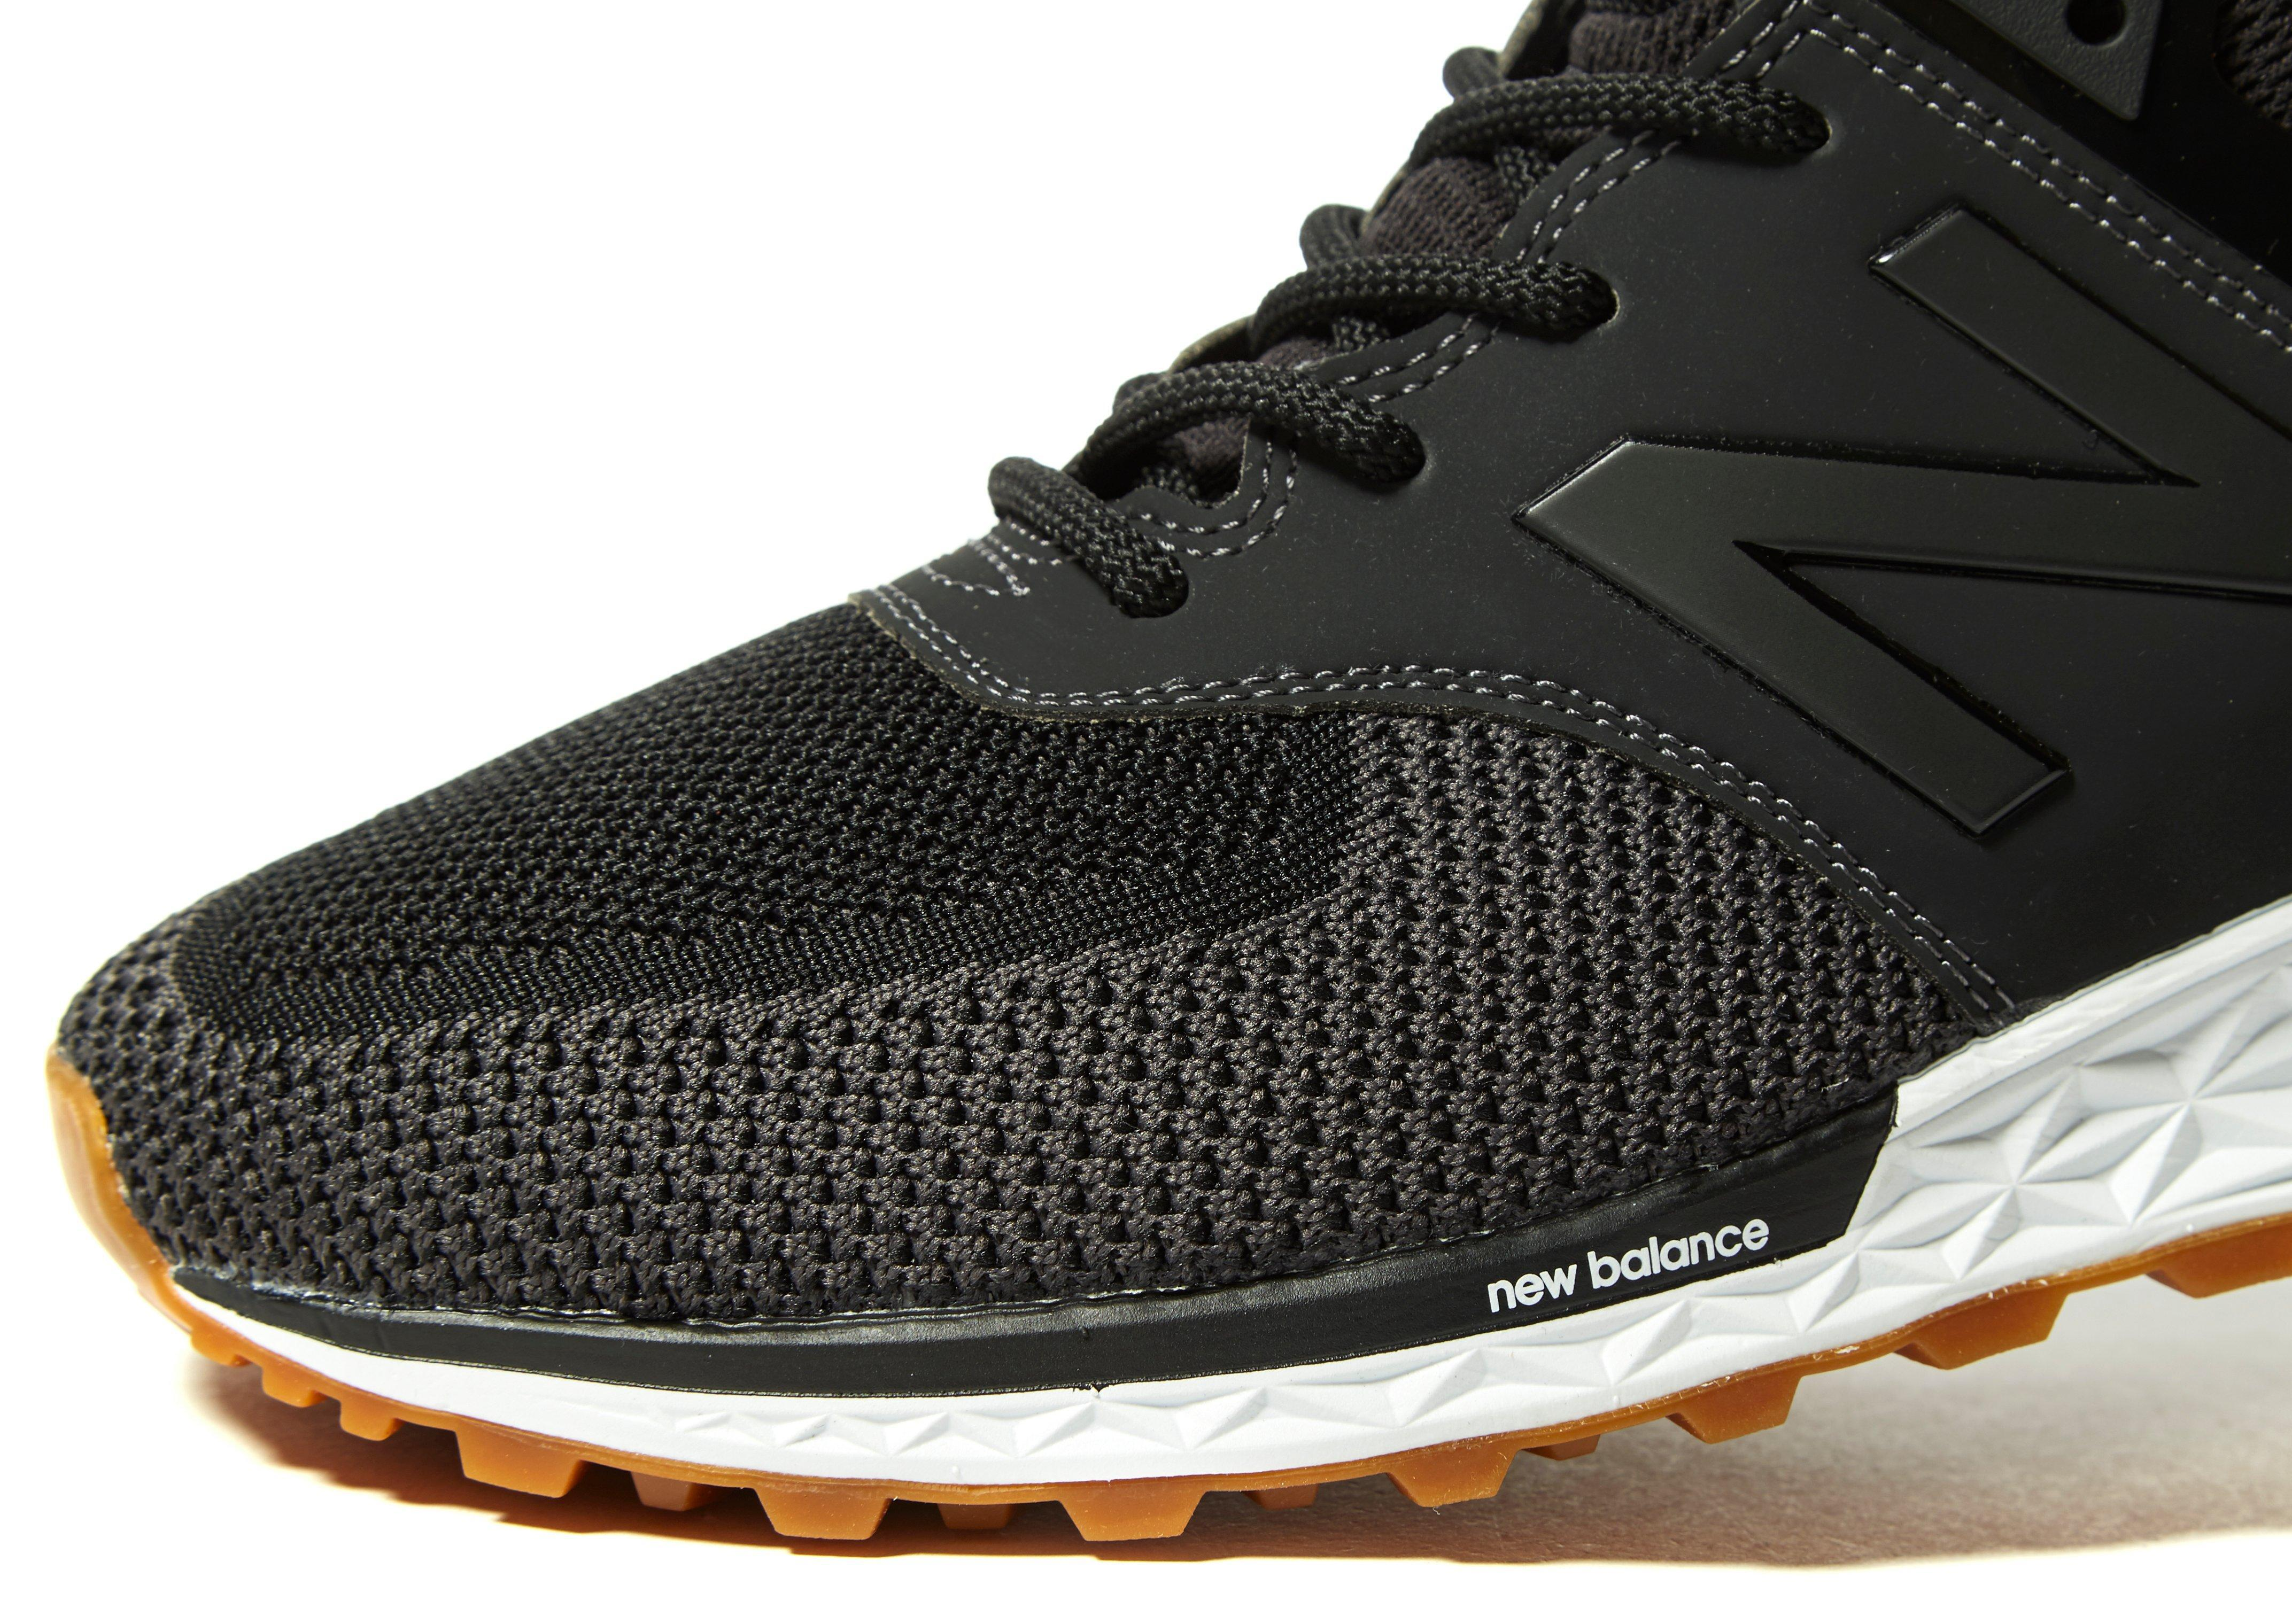 new balance 574s knit,Free delivery,OFF77%,welcome to buy!